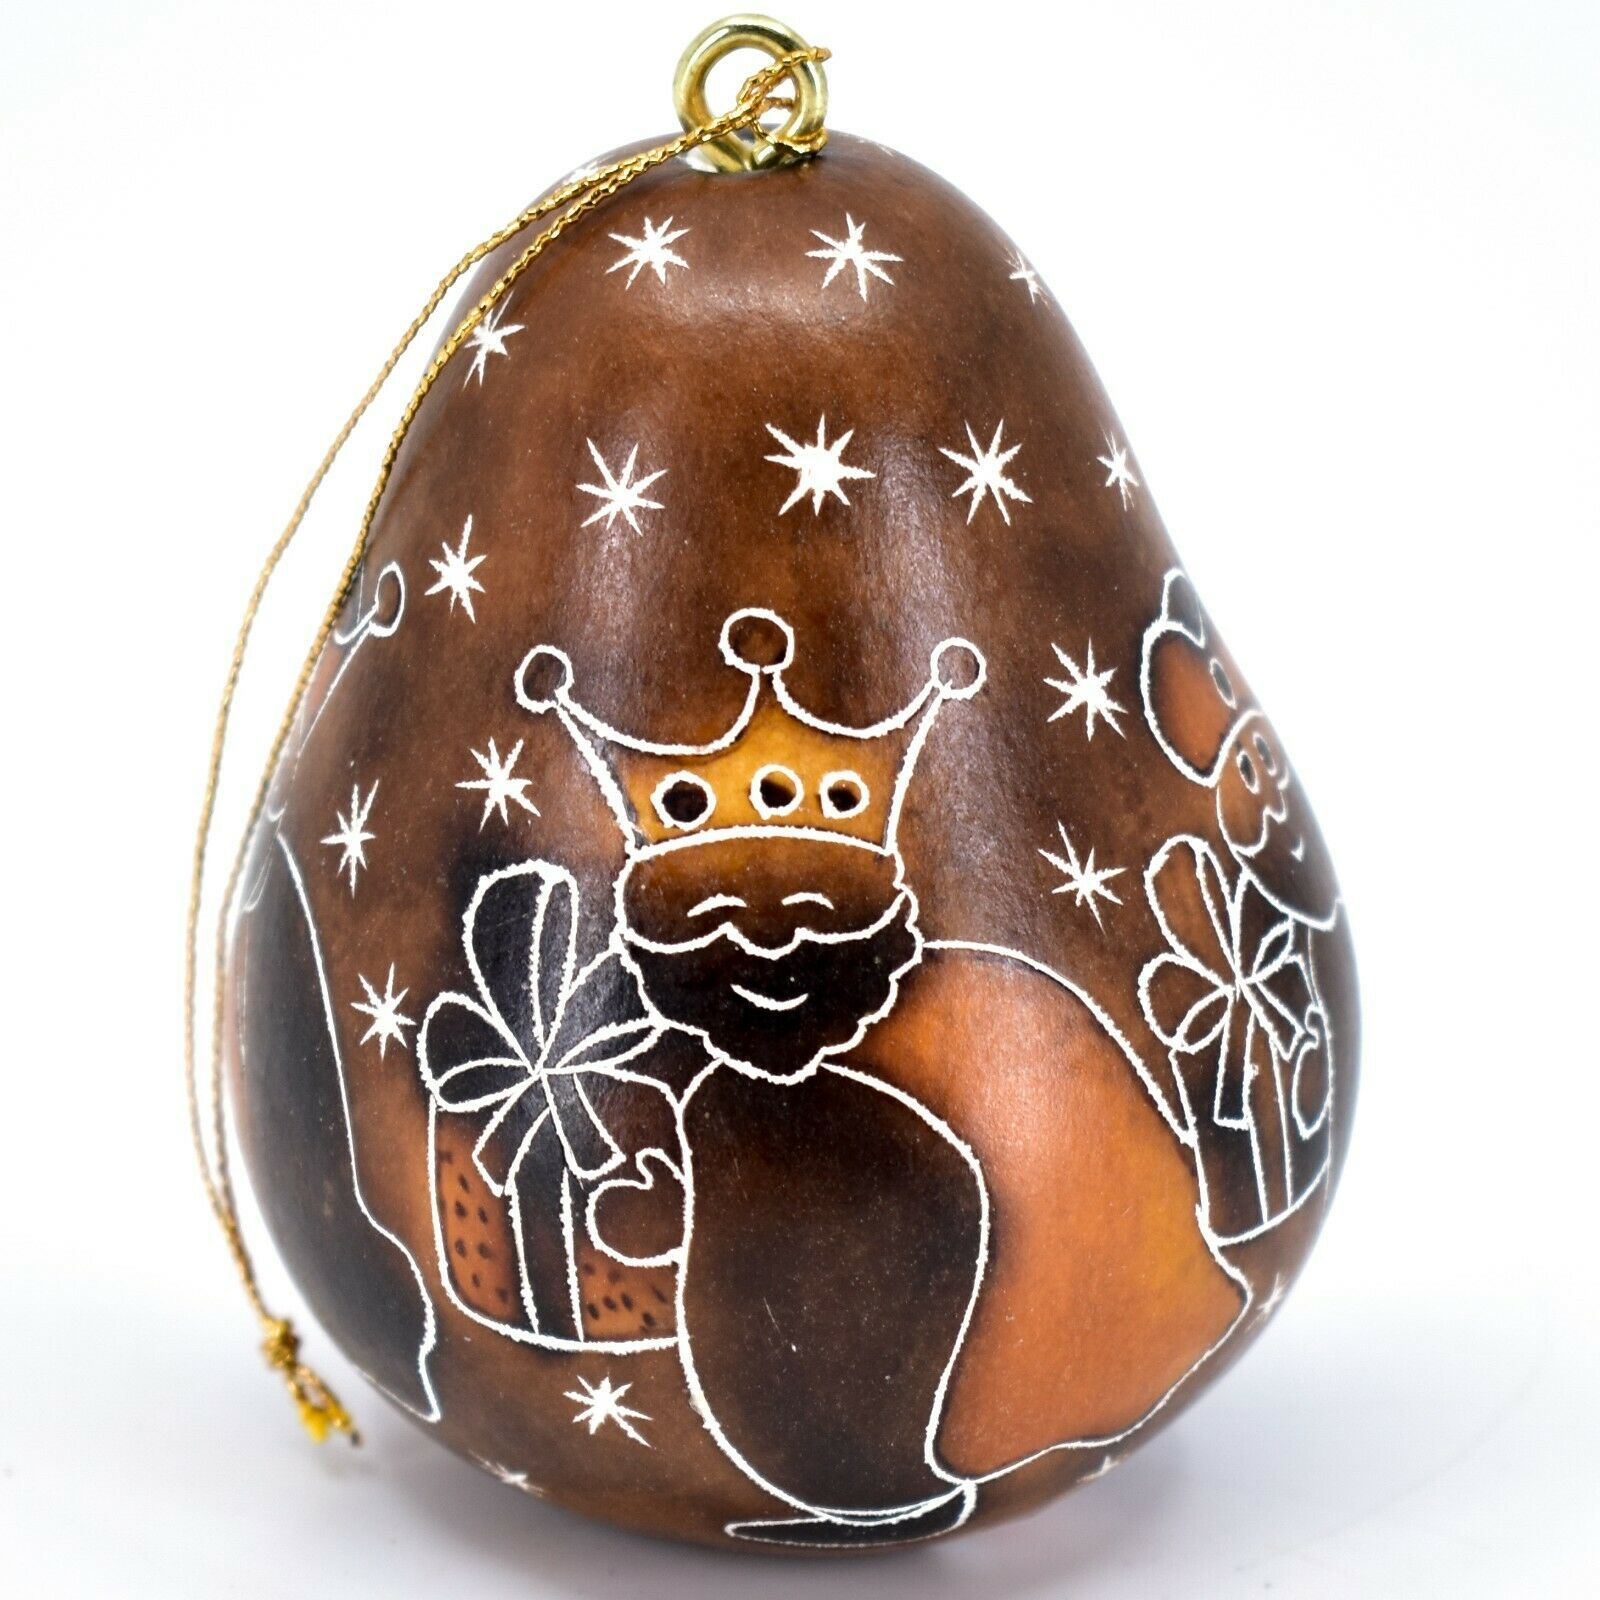 Handcrafted Carved Gourd 3 Kings Nativity Gifts Christmas Ornament Made in Peru